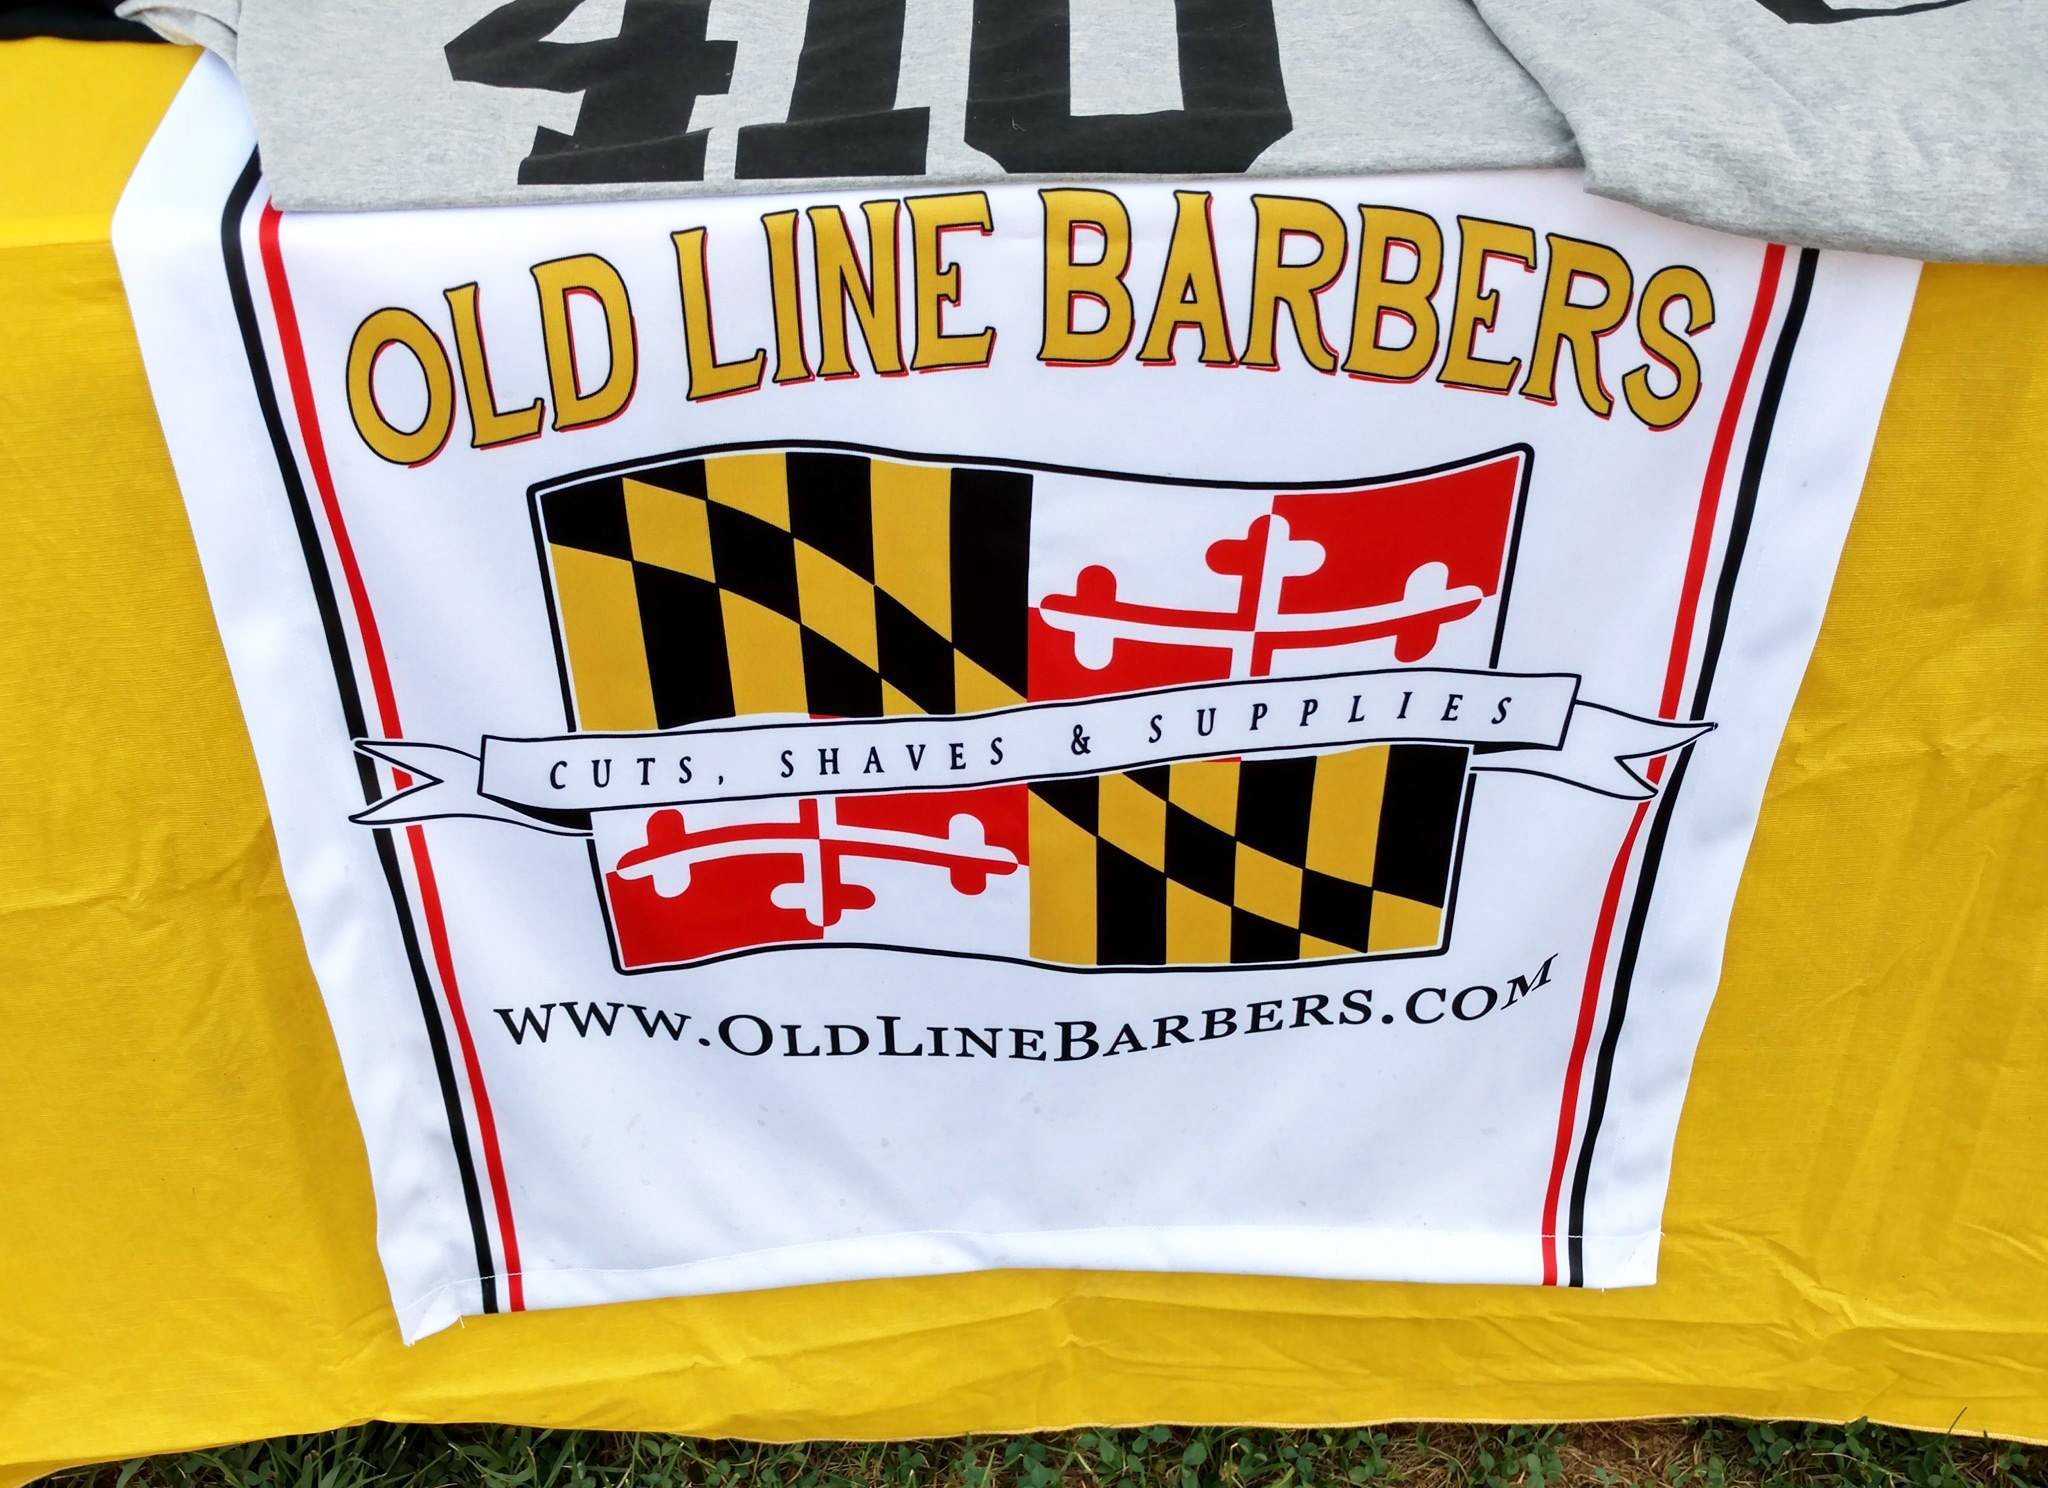 Custom designed table runner for vendor events. Made specially for Old Line Barbers.